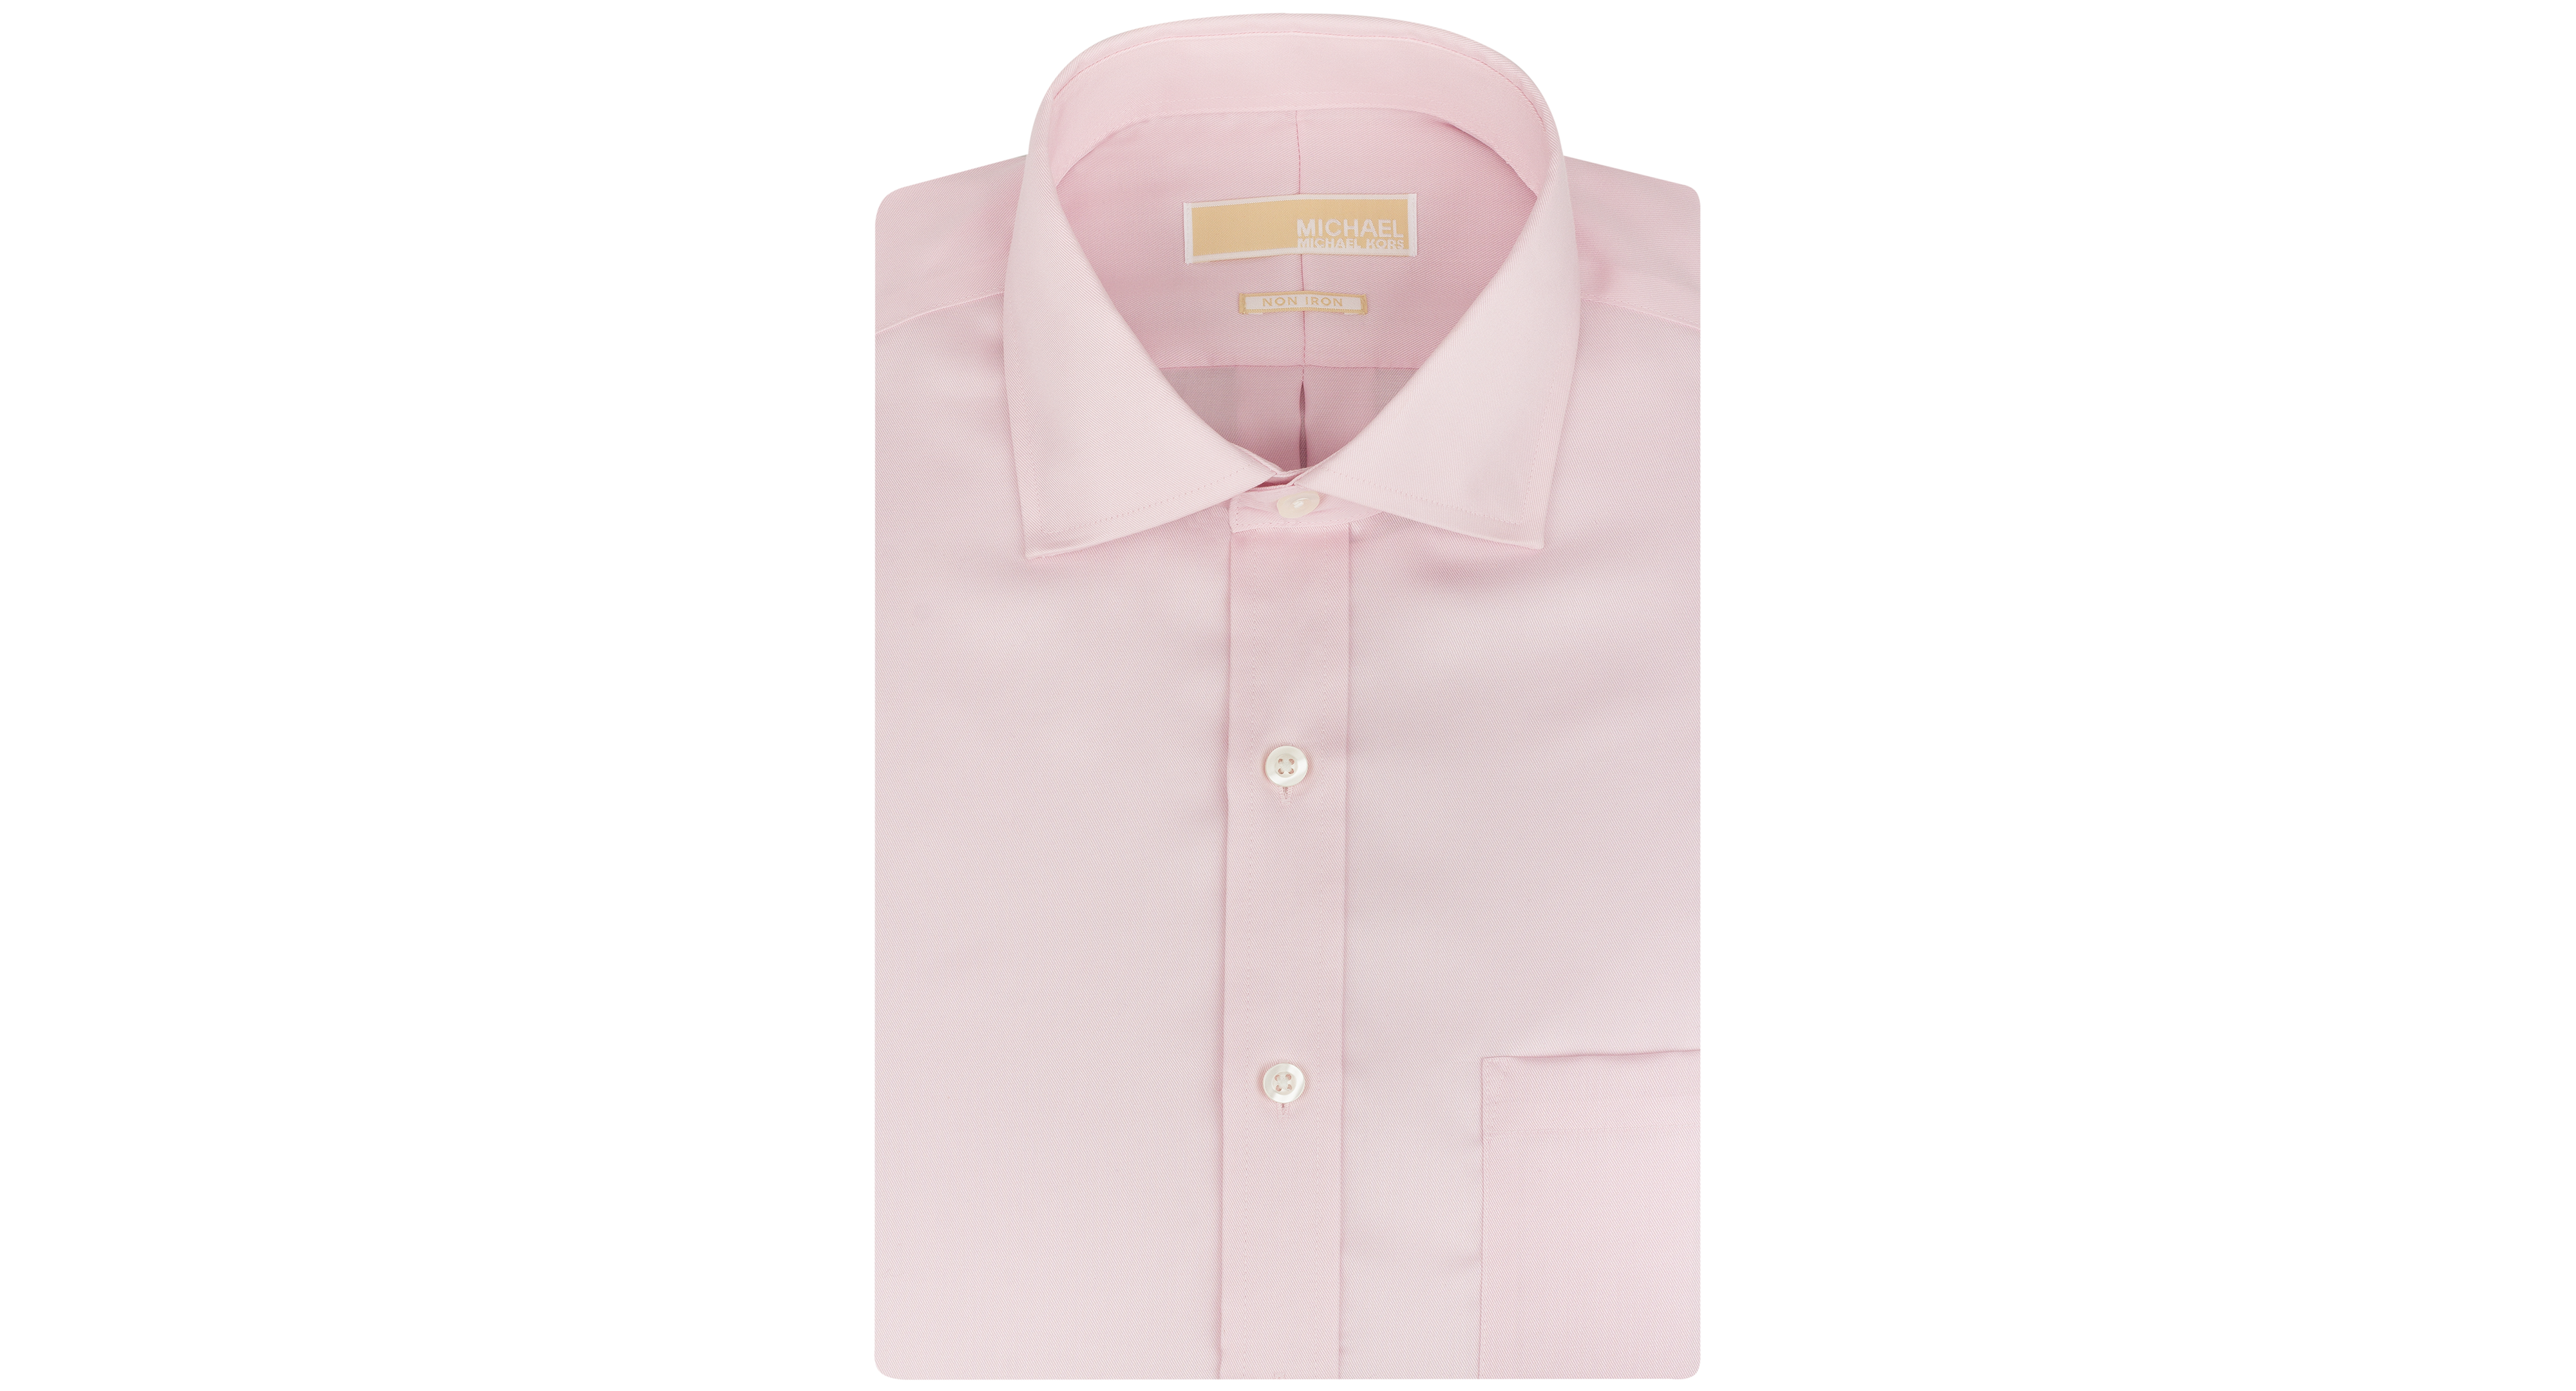 Michael Michael Kors Non-Iron Twill Solid Dress Shirt